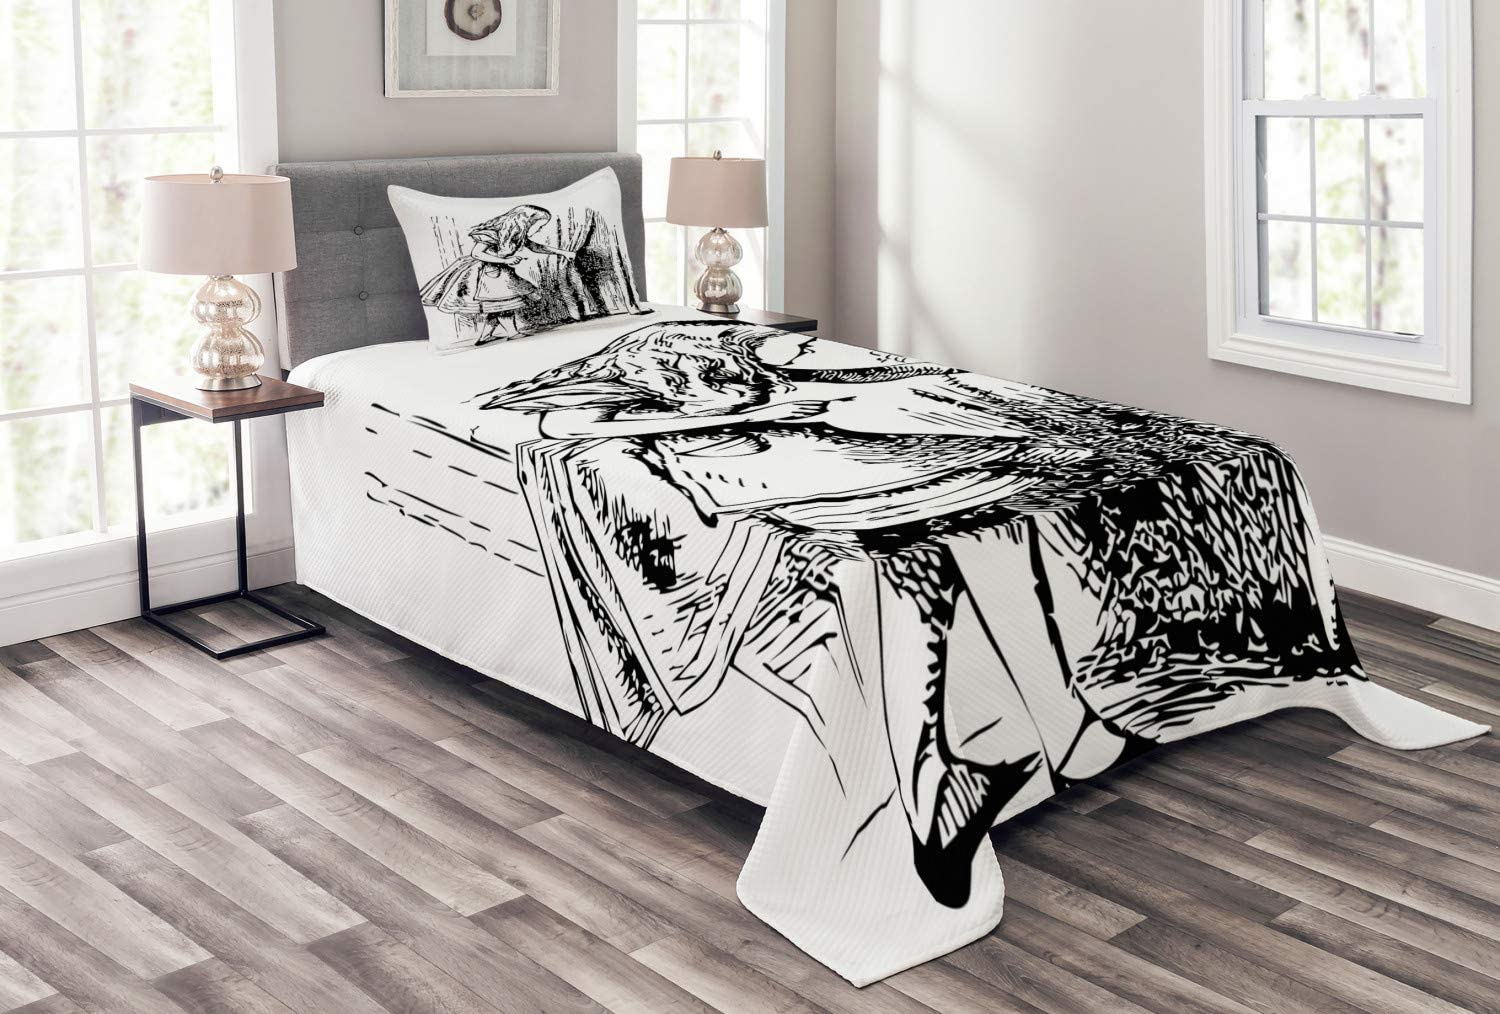 Ambesonne Alice in Wonderland Bedspread, Black and White Alice Looking Through Curtains Hidden Door Adventure, Decorative Quilted 2 Piece Coverlet Set with Pillow Sham, Twin Size, Black White